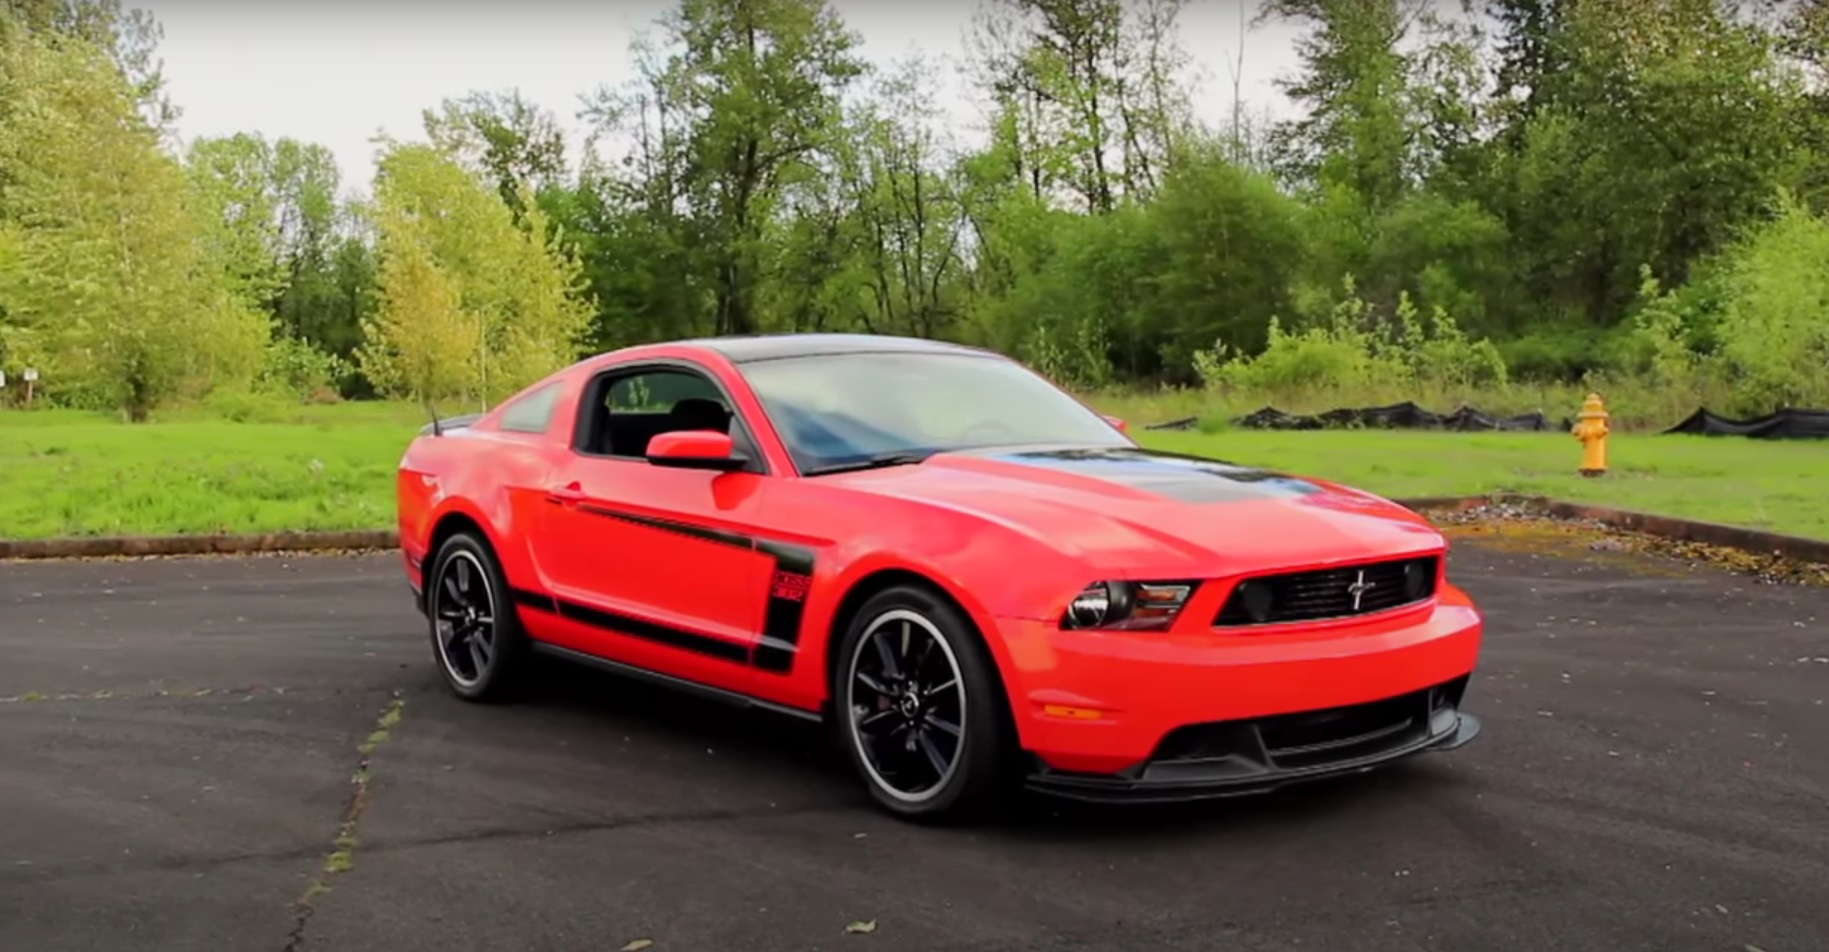 Video: 2012 Ford Mustang BOSS 302 Muscle Car